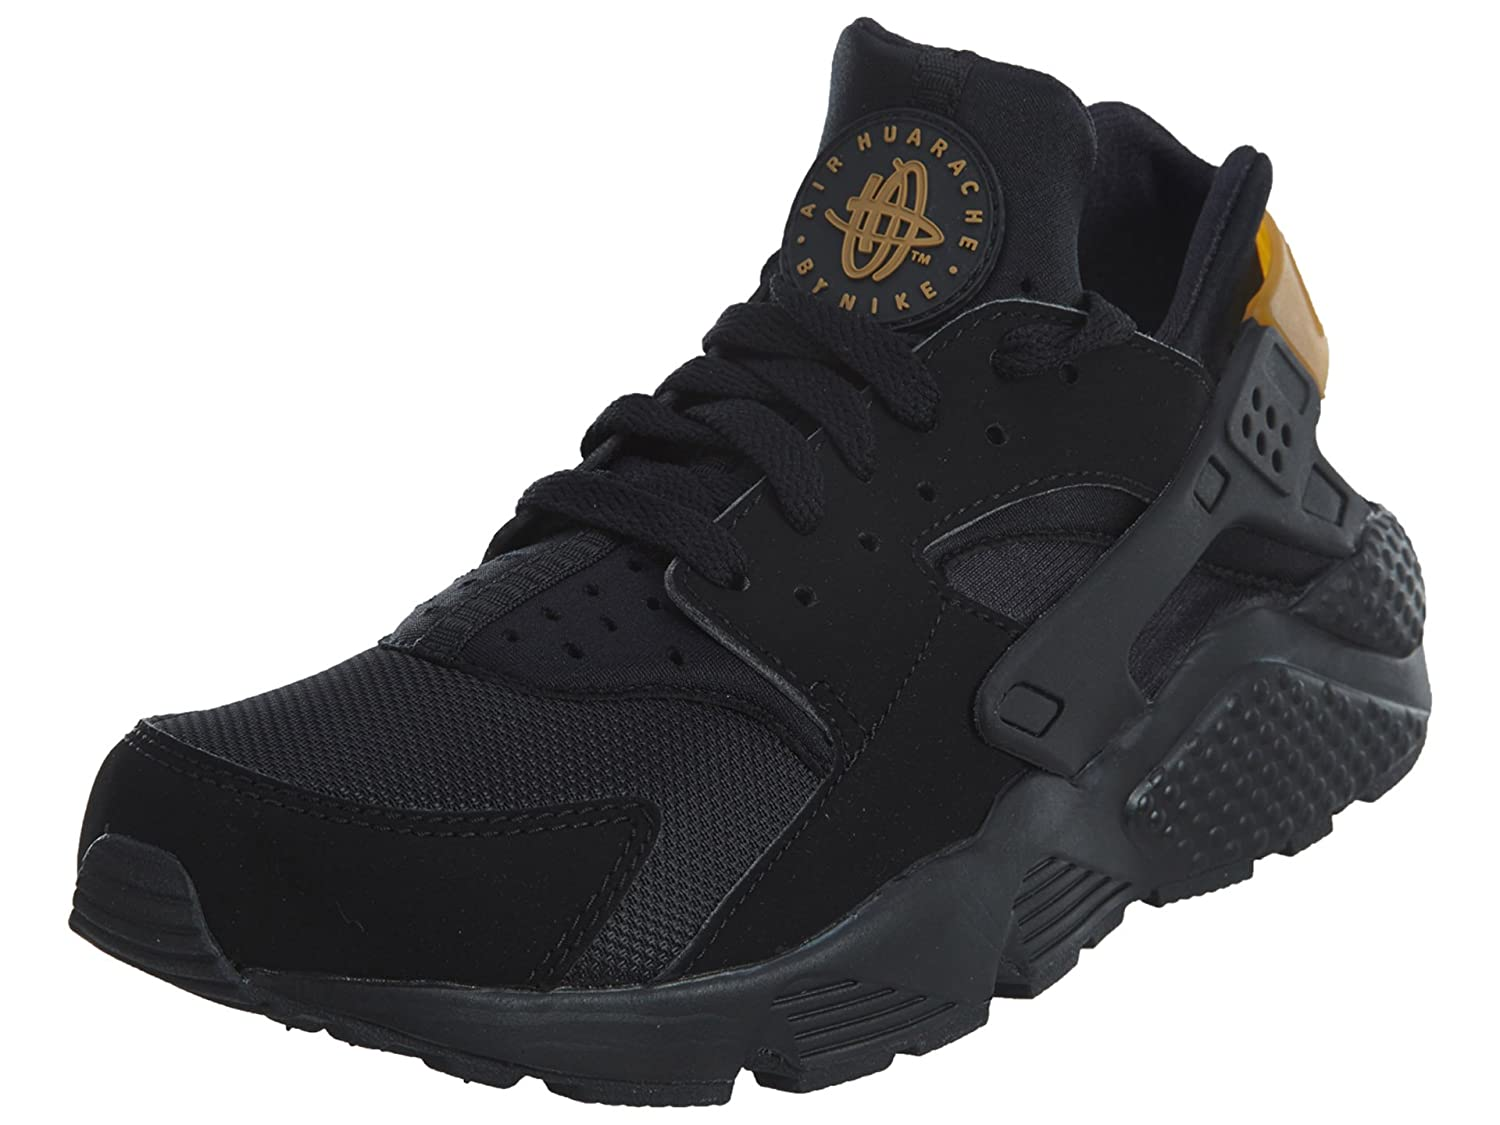 papel Descartar bueno  Buy Nike Men's Air Huarache, Black/Metallic Gold, 7. 5 M US at Amazon.in